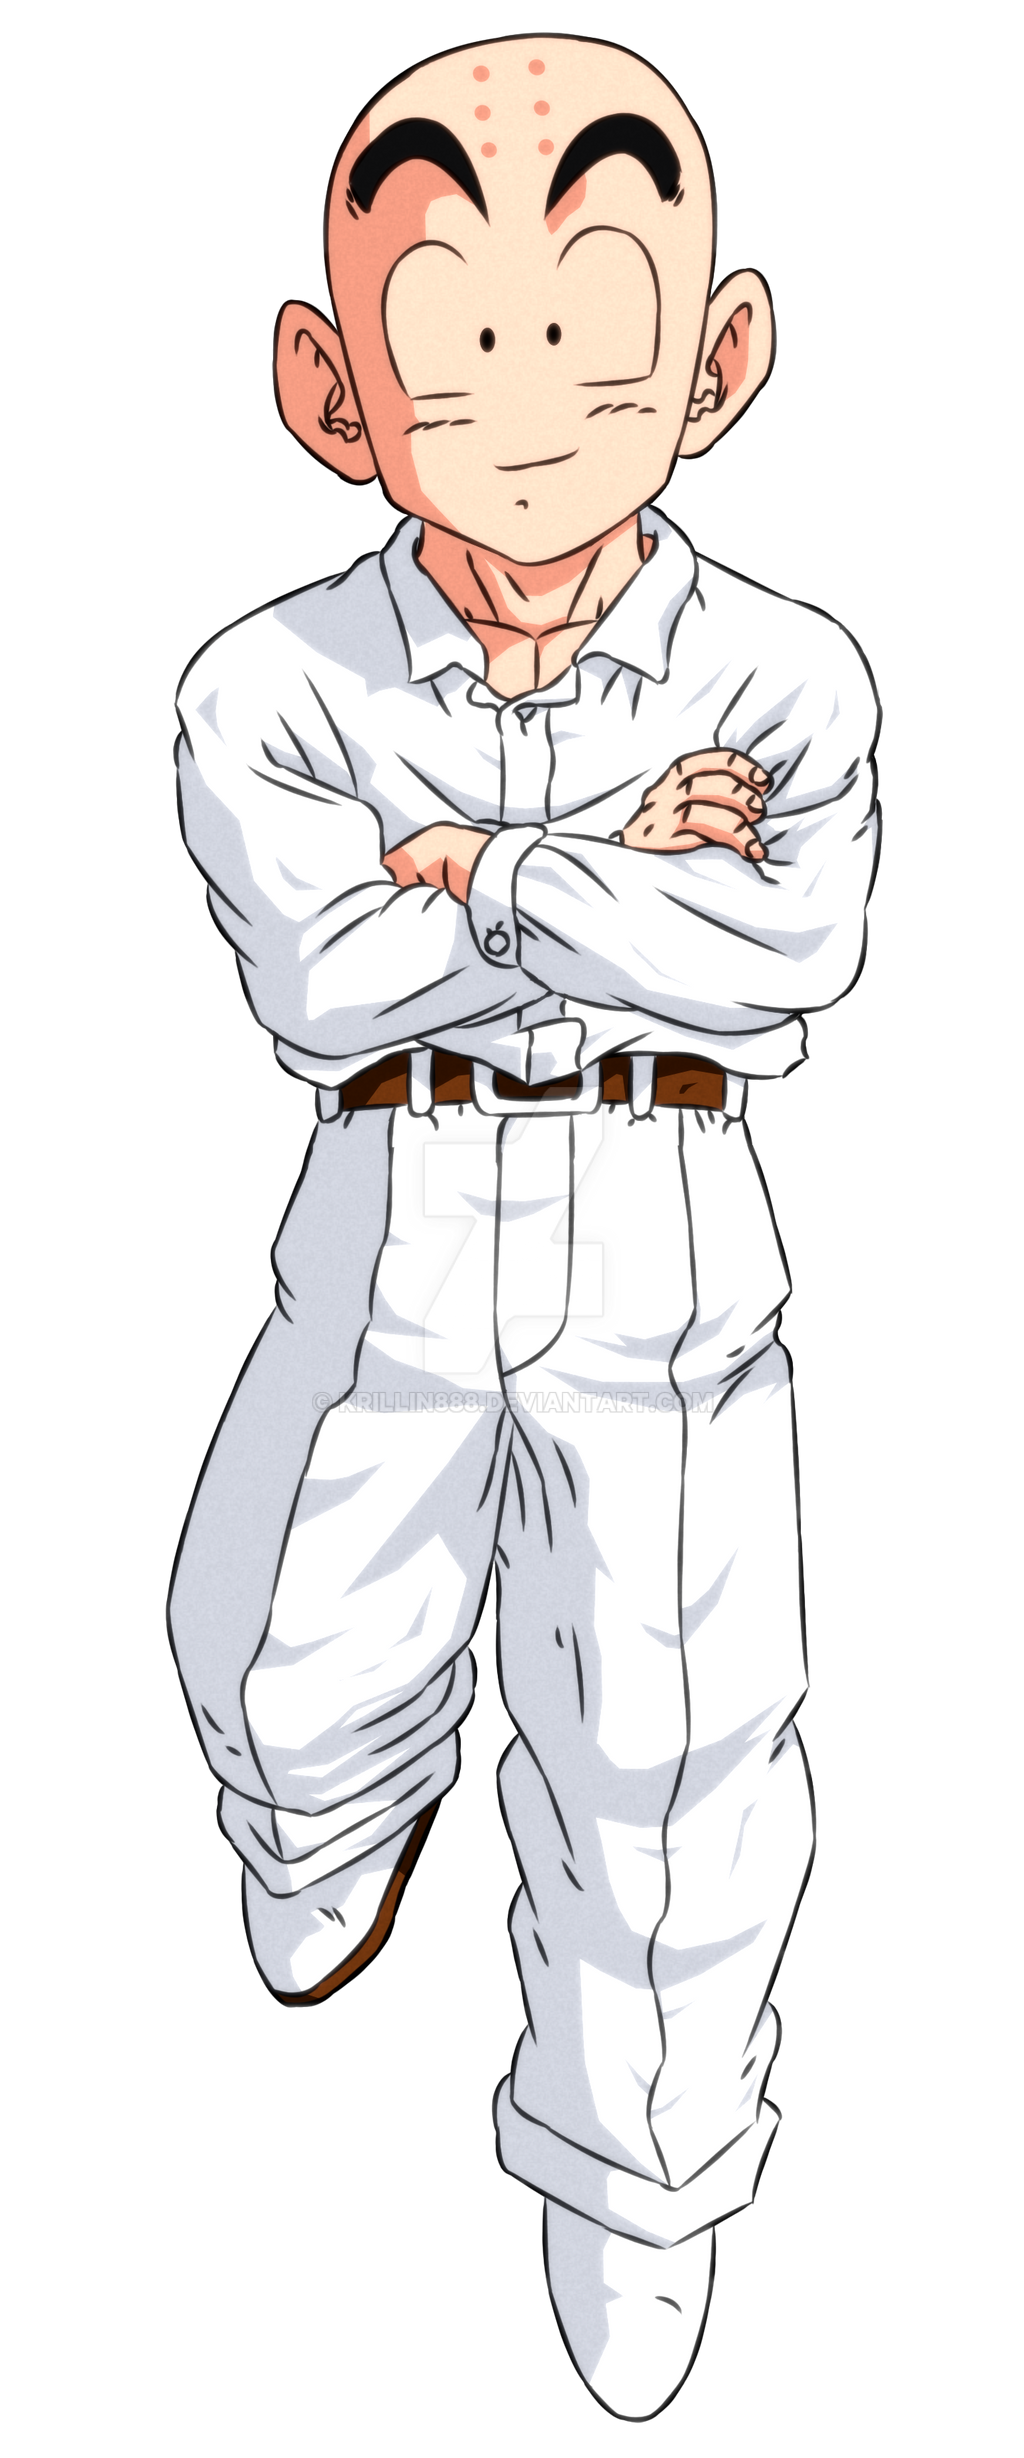 Krillin Dragonball Z Garlic Jr Saga V 2 By Krillin888 On Deviantart When we are first introduced to him he comes off as some tiny weak imp. krillin dragonball z garlic jr saga